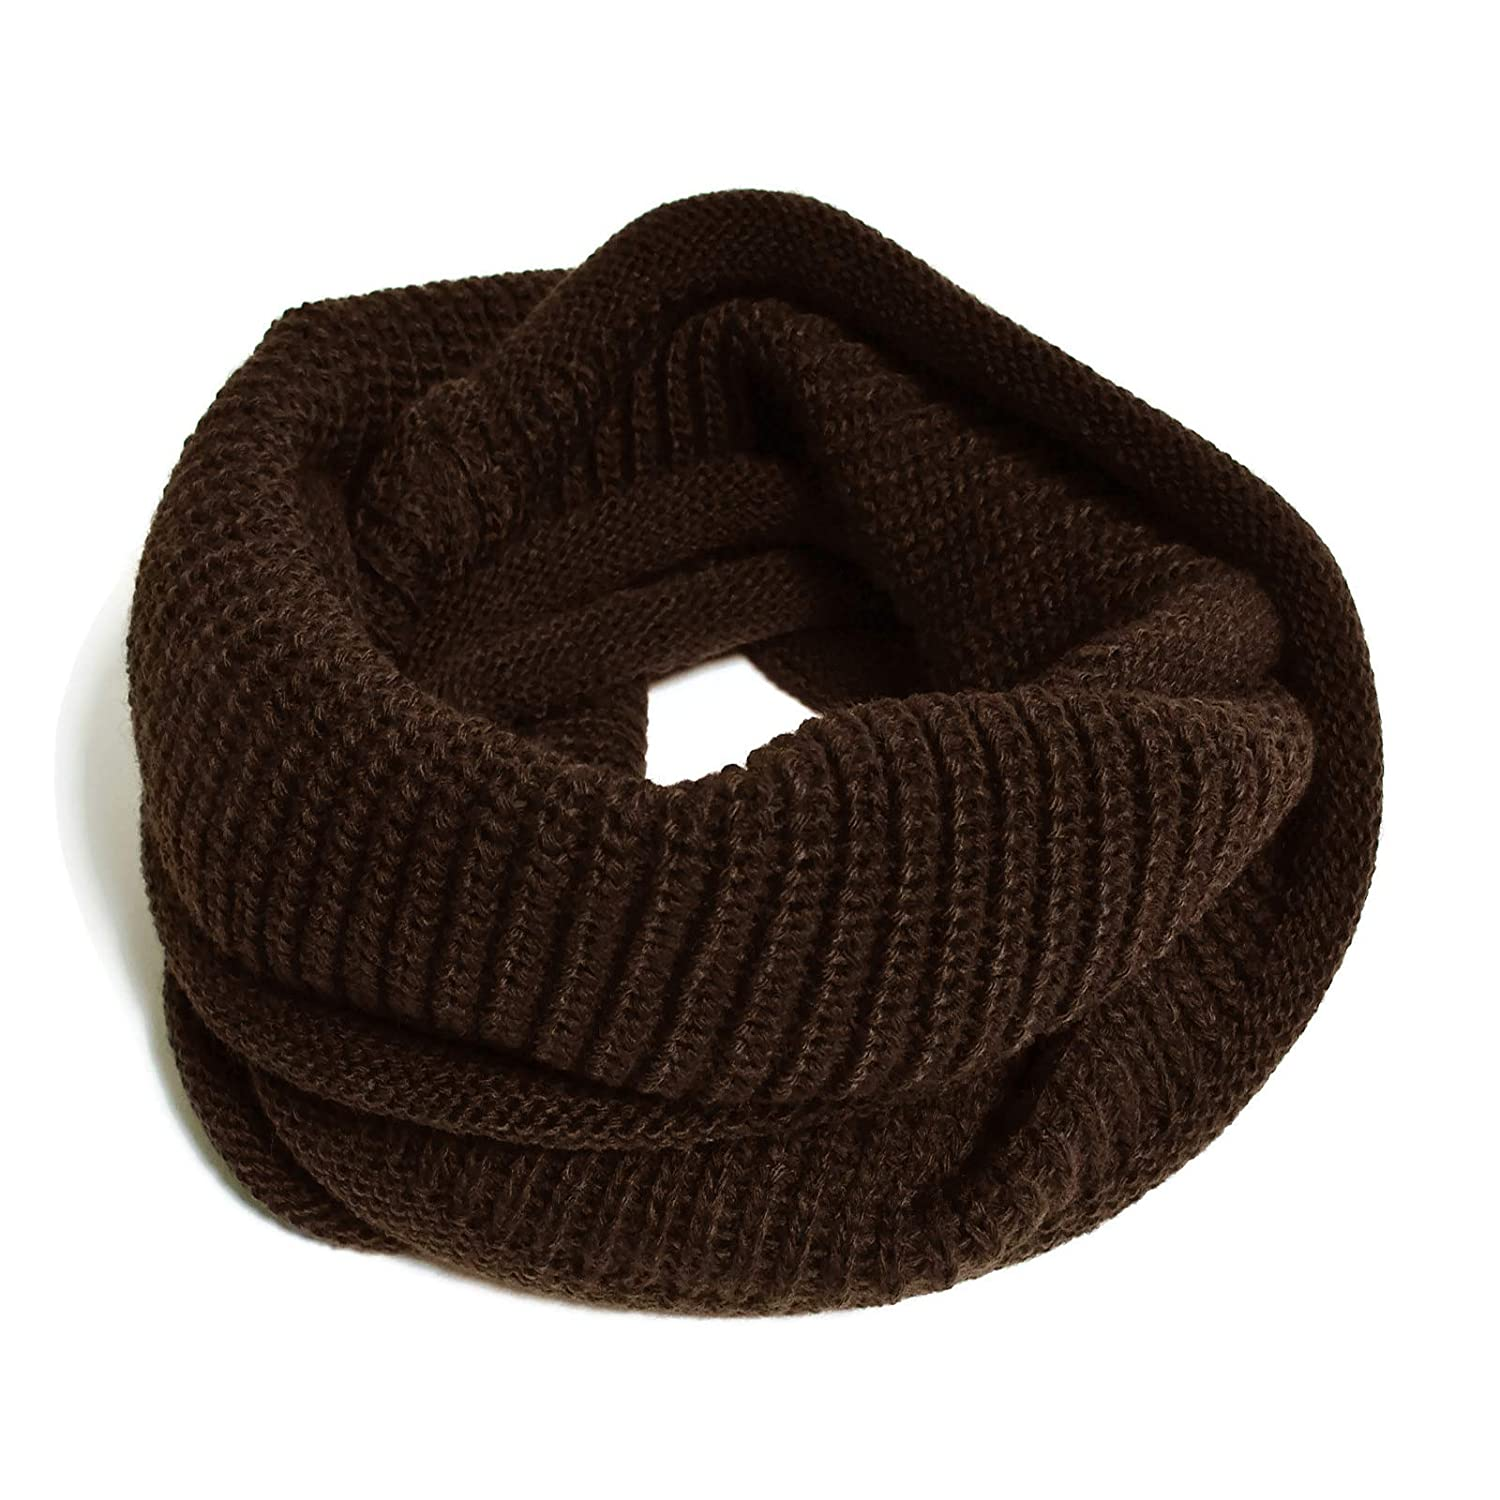 HappyTree Kids Hot Fashion Thick Knitted Winter Warm Infinity Scarf Dark Brown M211